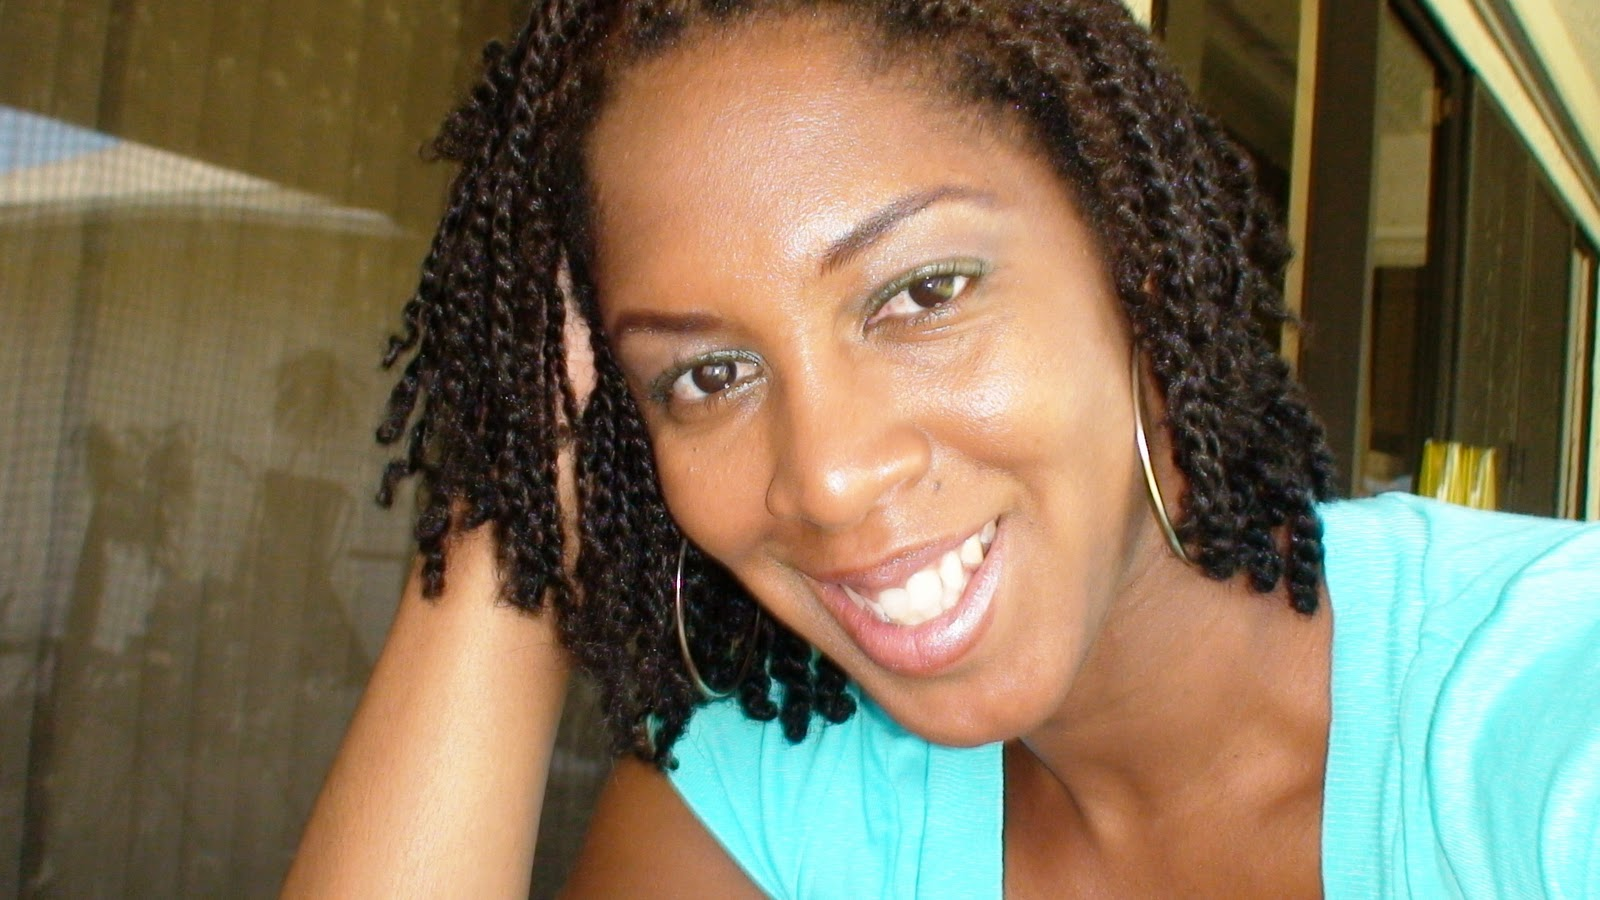 HOW TO CARE FOR COILY HAIR: Using Two Strand Twists To